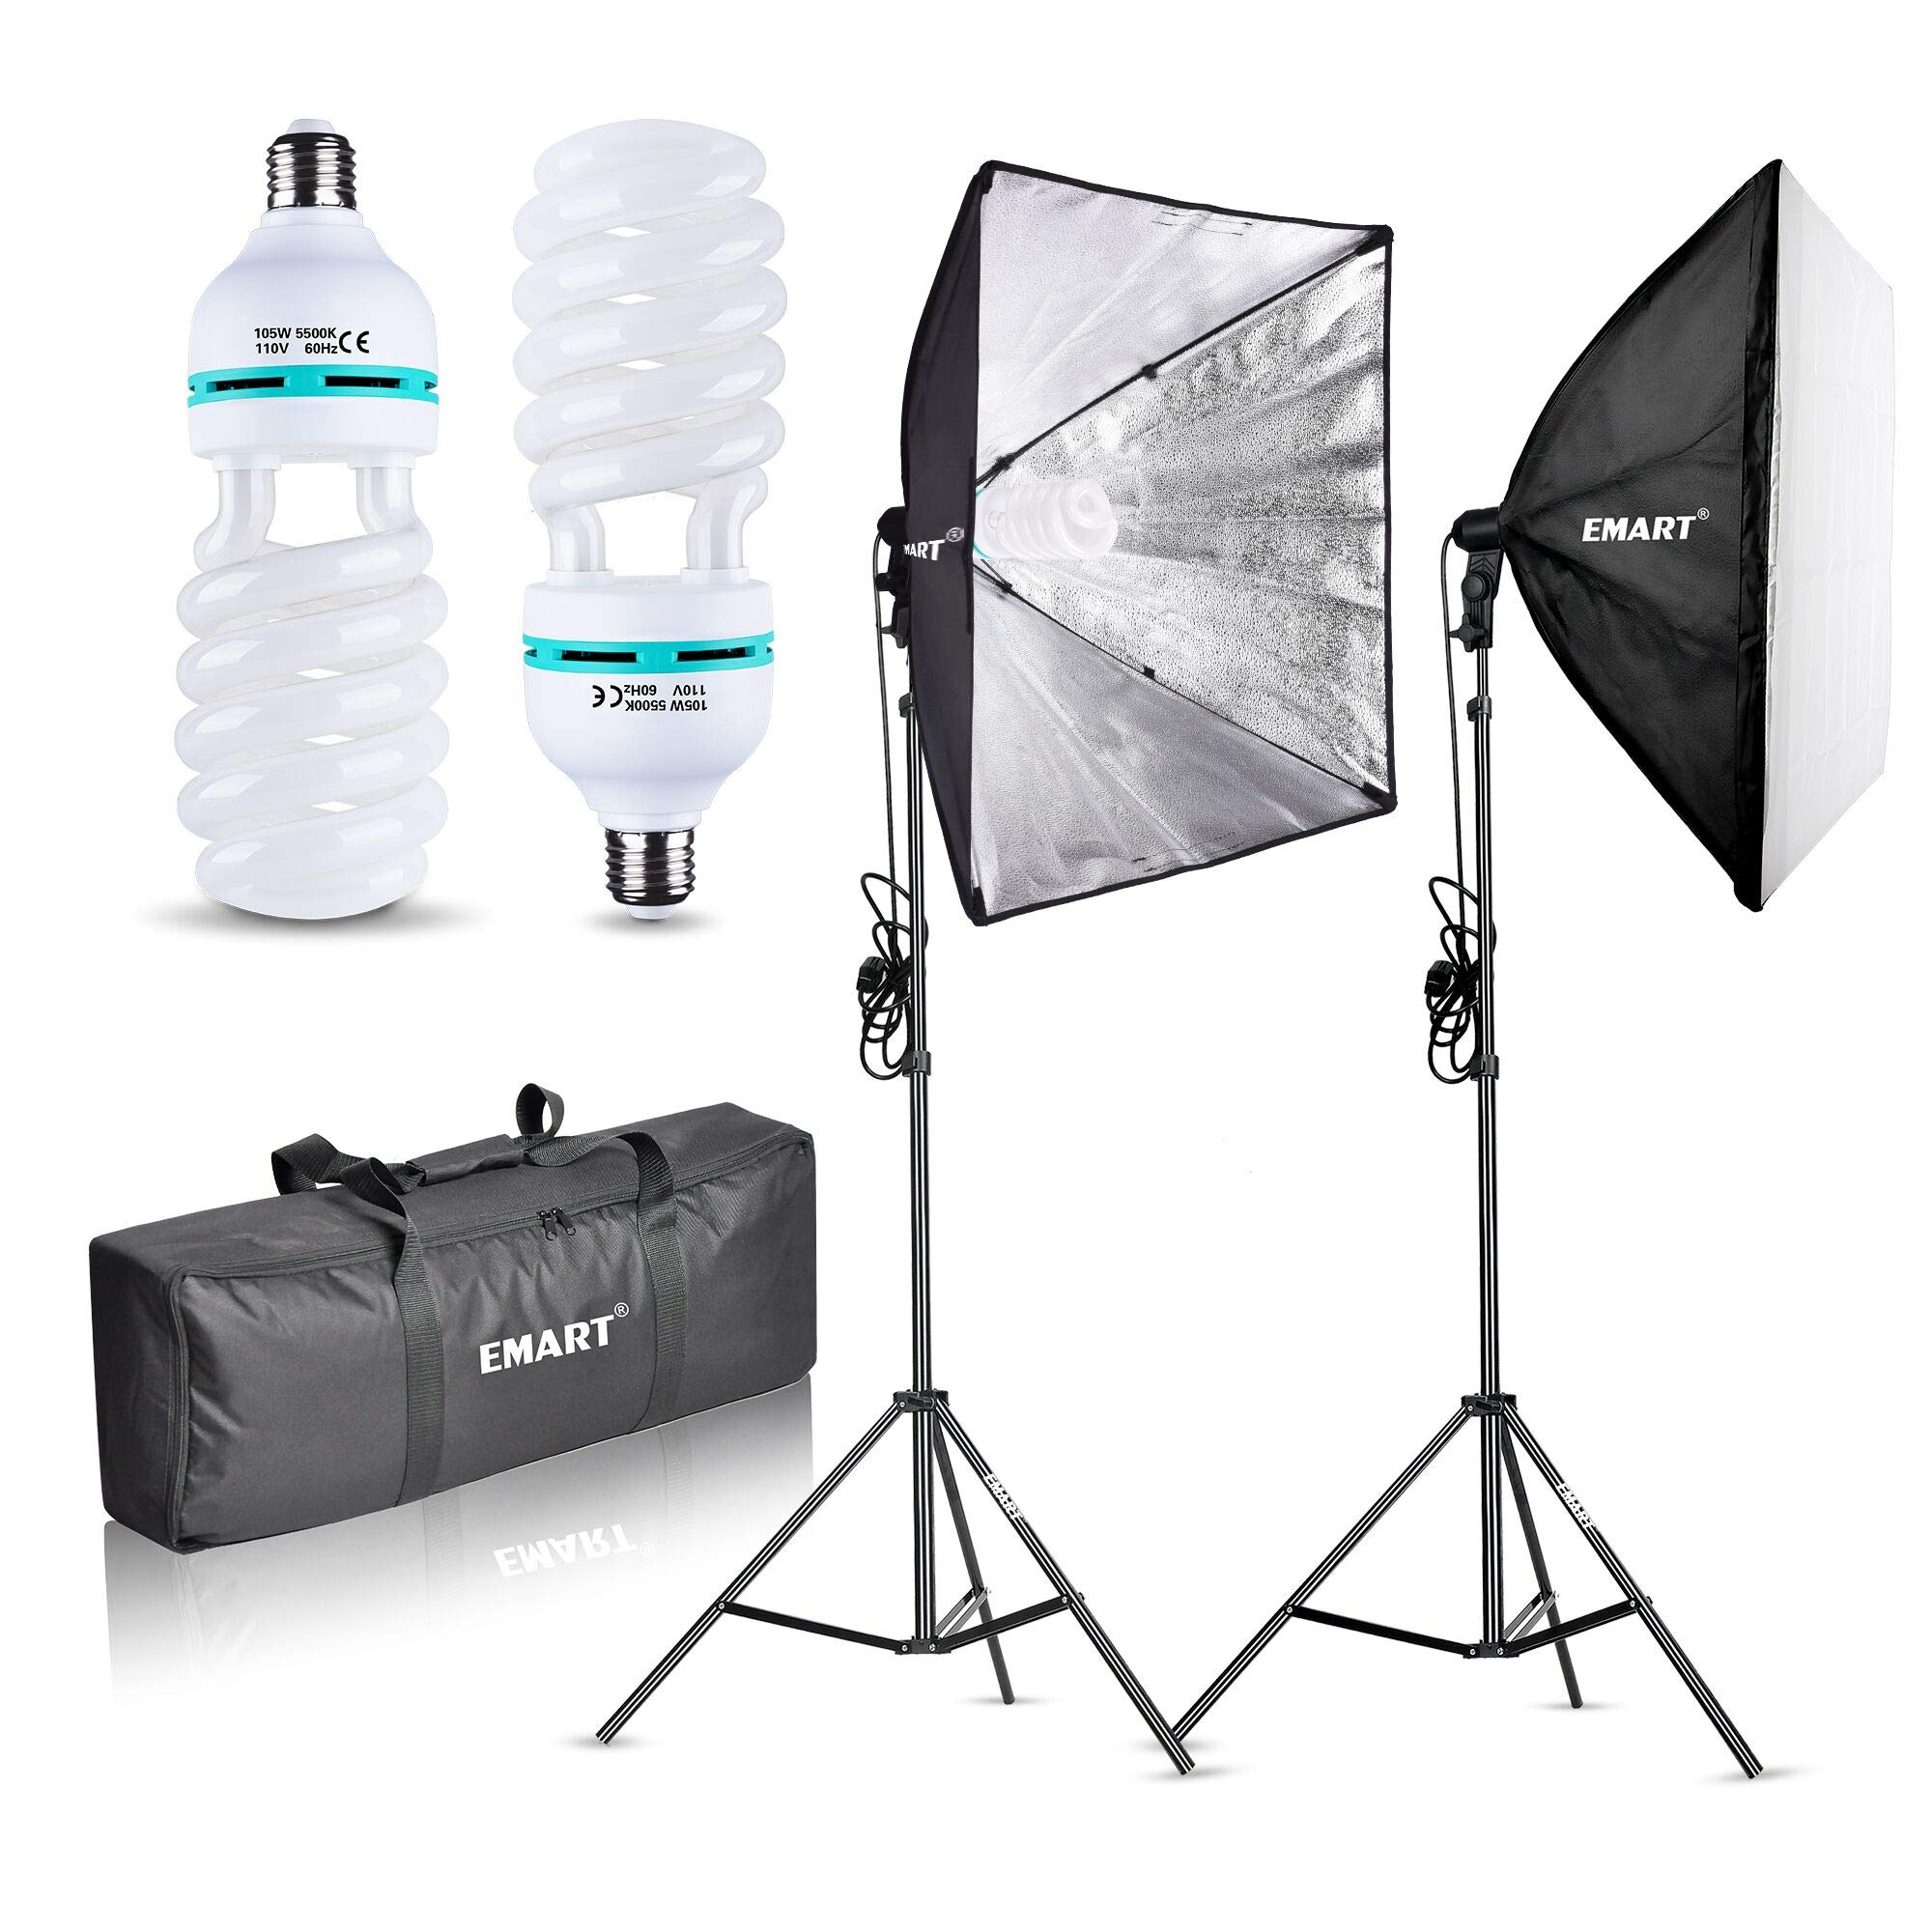 Emart 900W Softbox Lighting Kit Photography Continuous Photo Studio Light System for YouTube Video Shooting Soft Box 24'' x 24'' by EMART (Image #1)